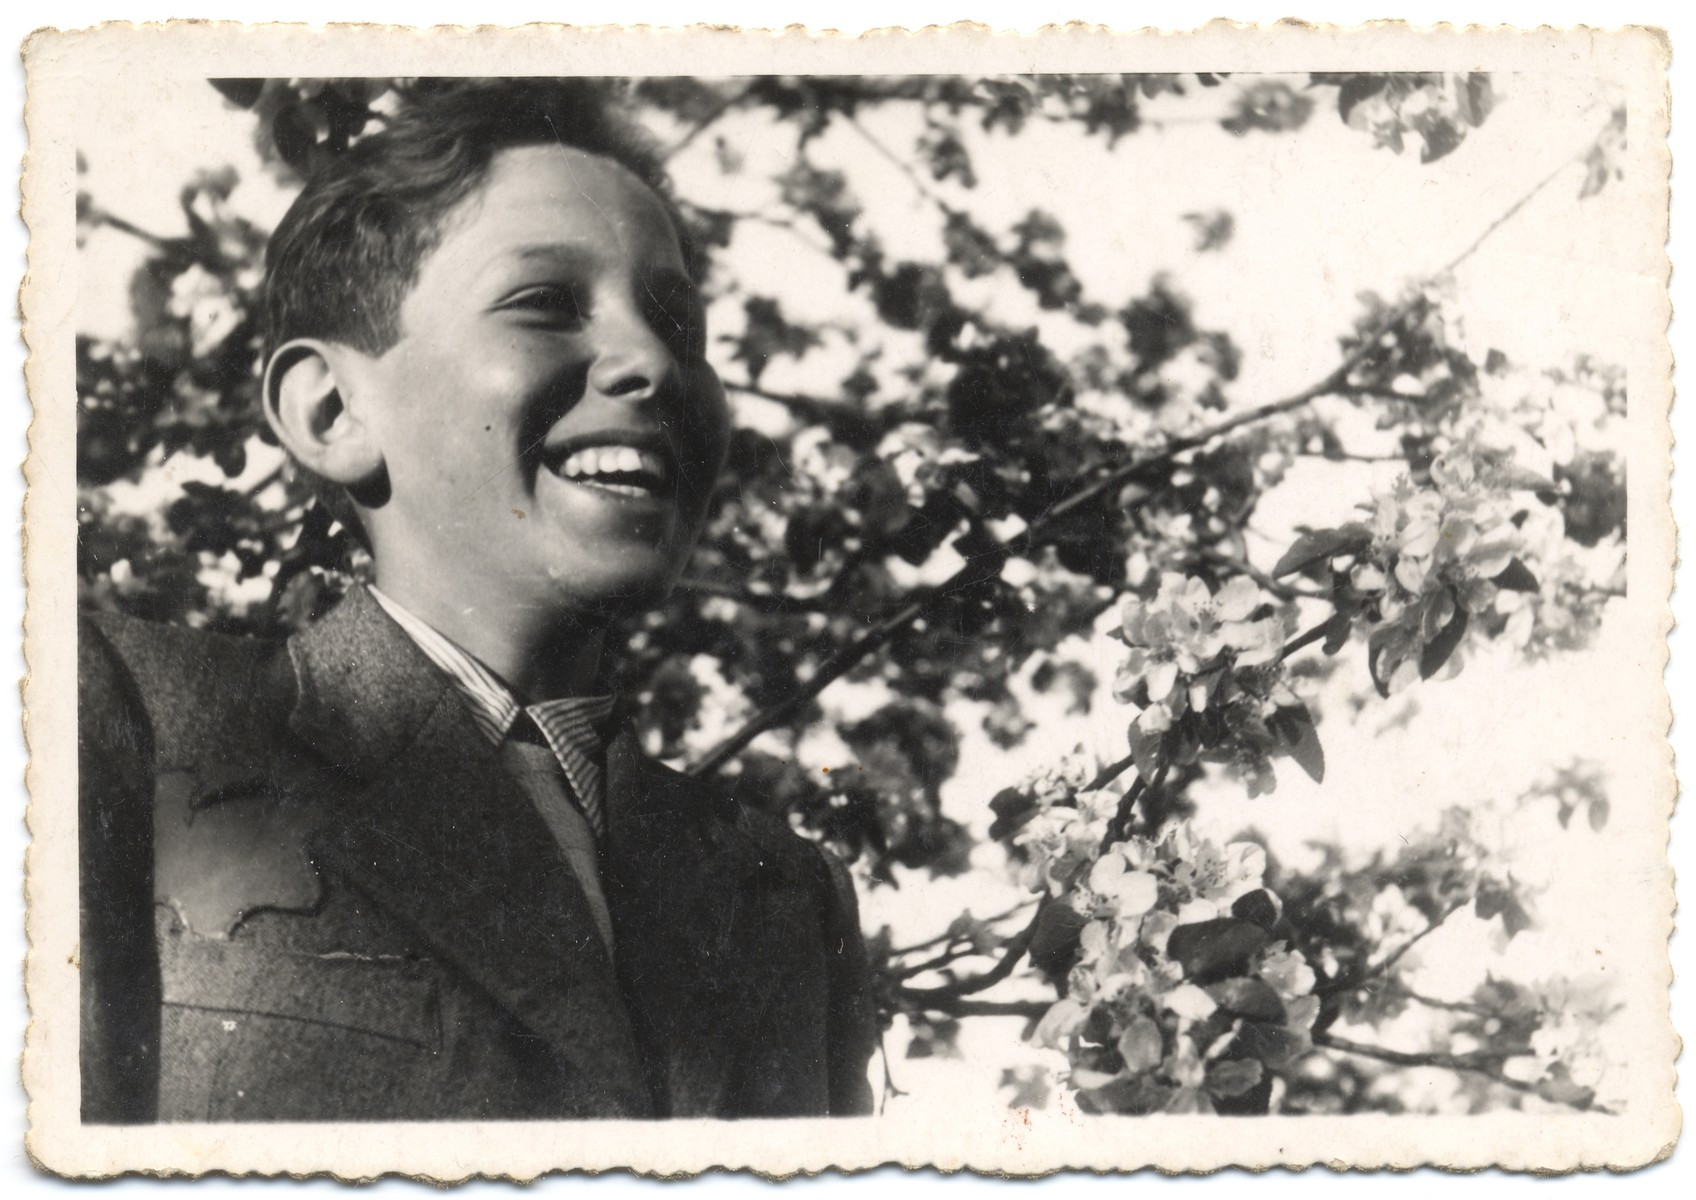 Portrait of a young Jewish teenager in the Lodz ghetto.  Pictured is Menek Fajtlowicz, the cousin of the donor.